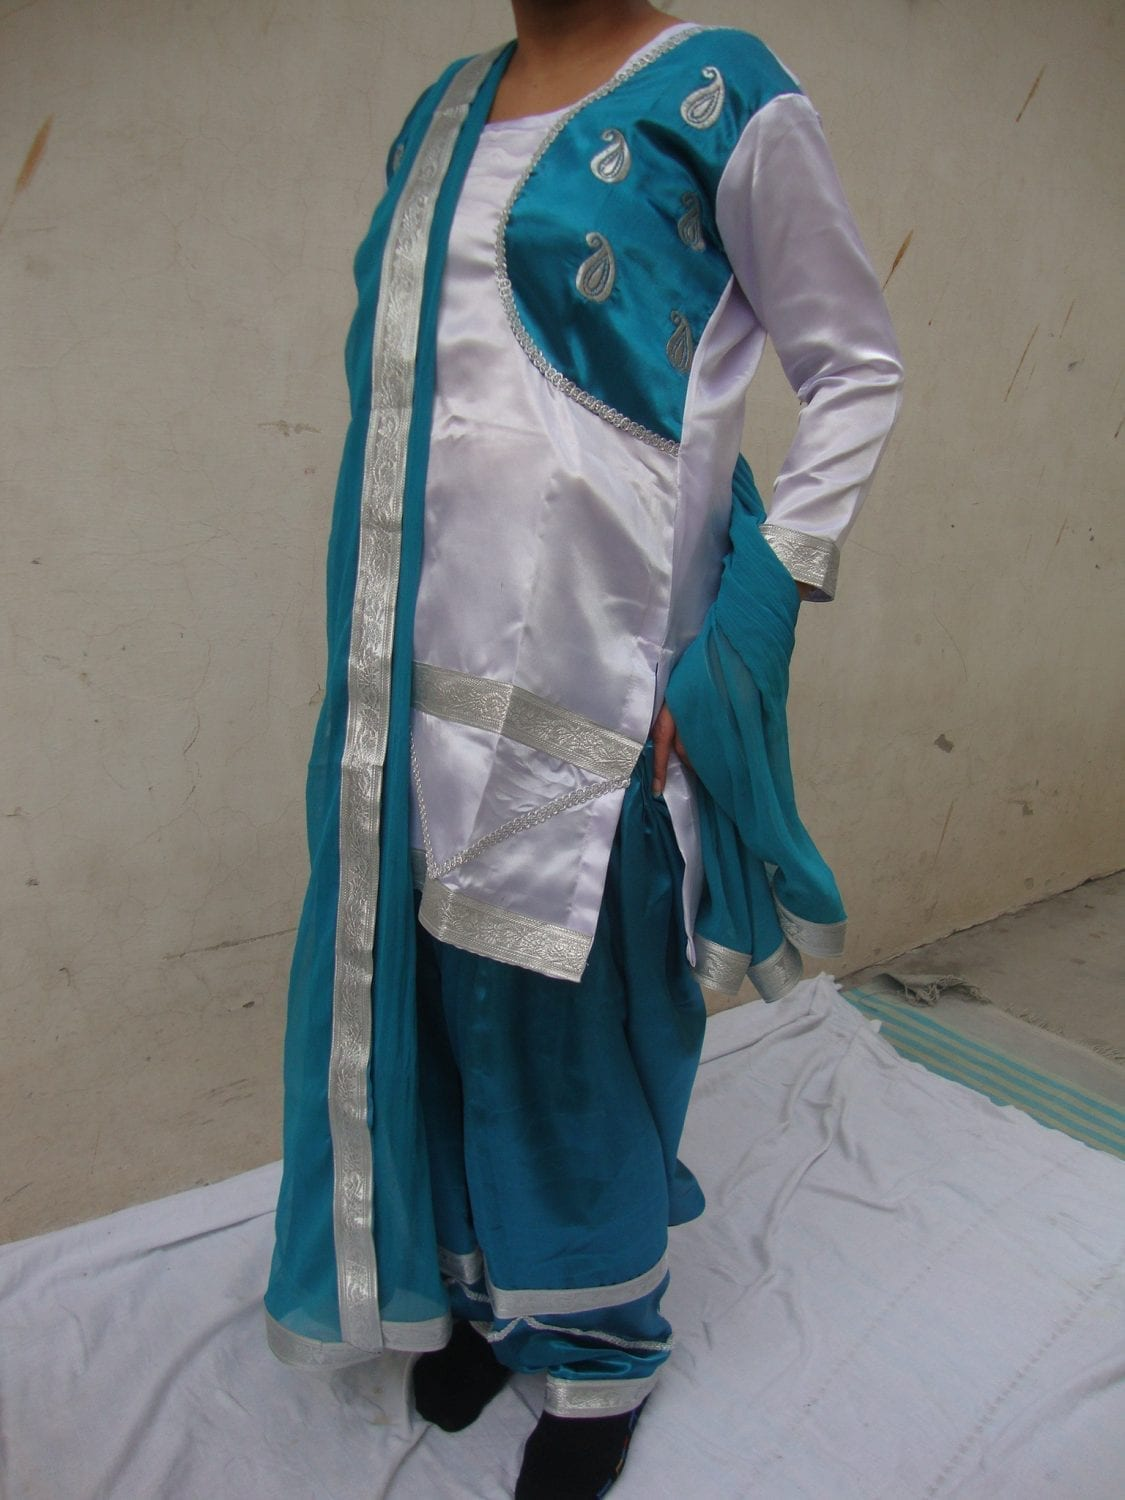 BLUE/WHITE custom made Girl's Bhangra Costume outfit dance dress 1